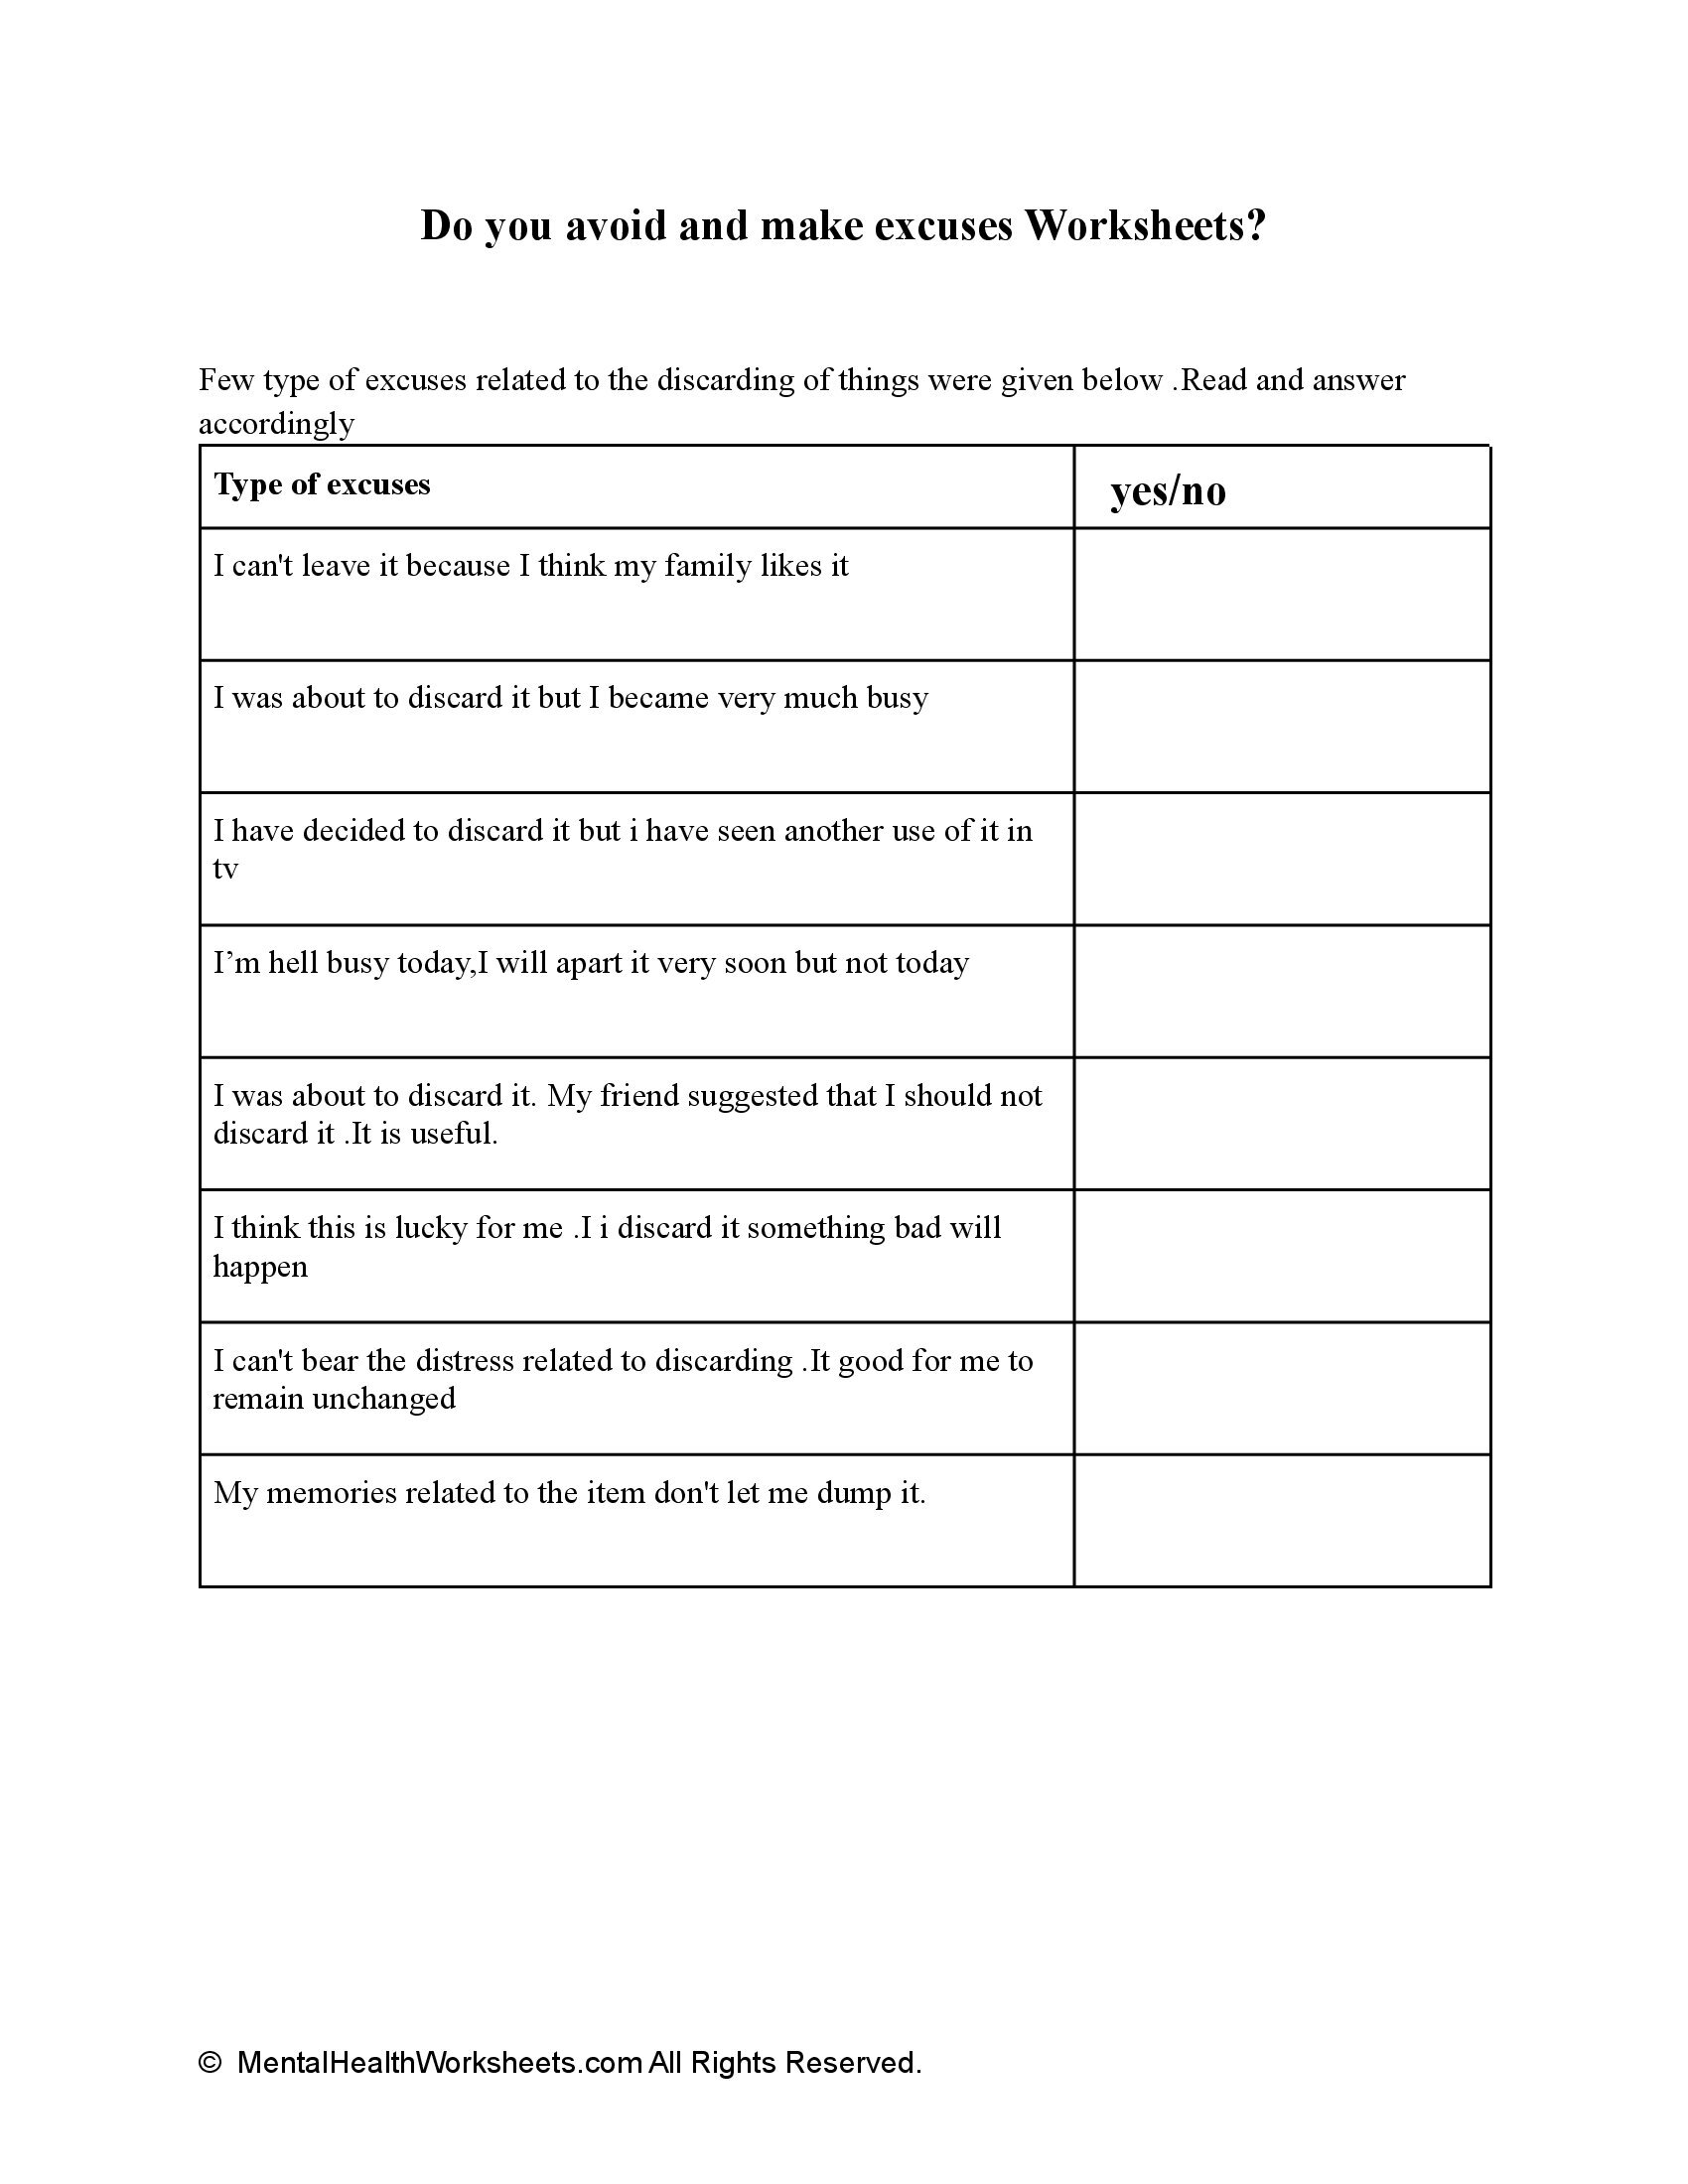 Do you avoid and make excuses Worksheets?